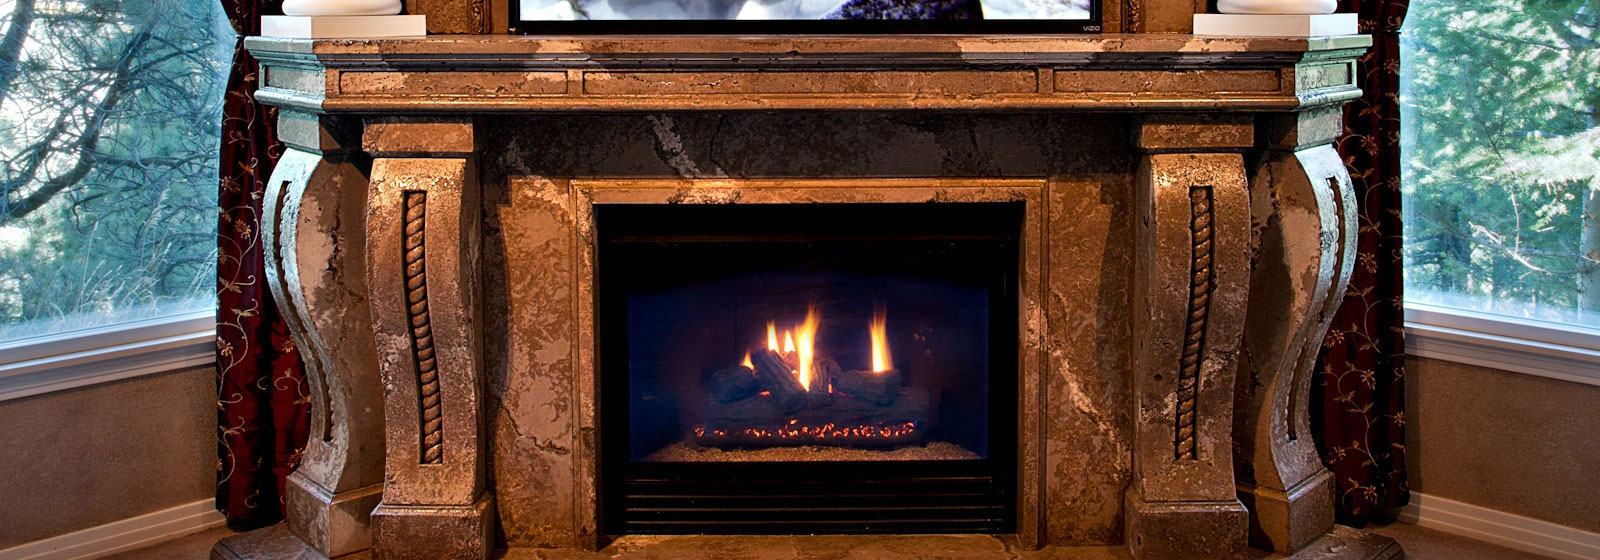 Fireplace Mantel Parts Fireplaces Fireplace Mantels